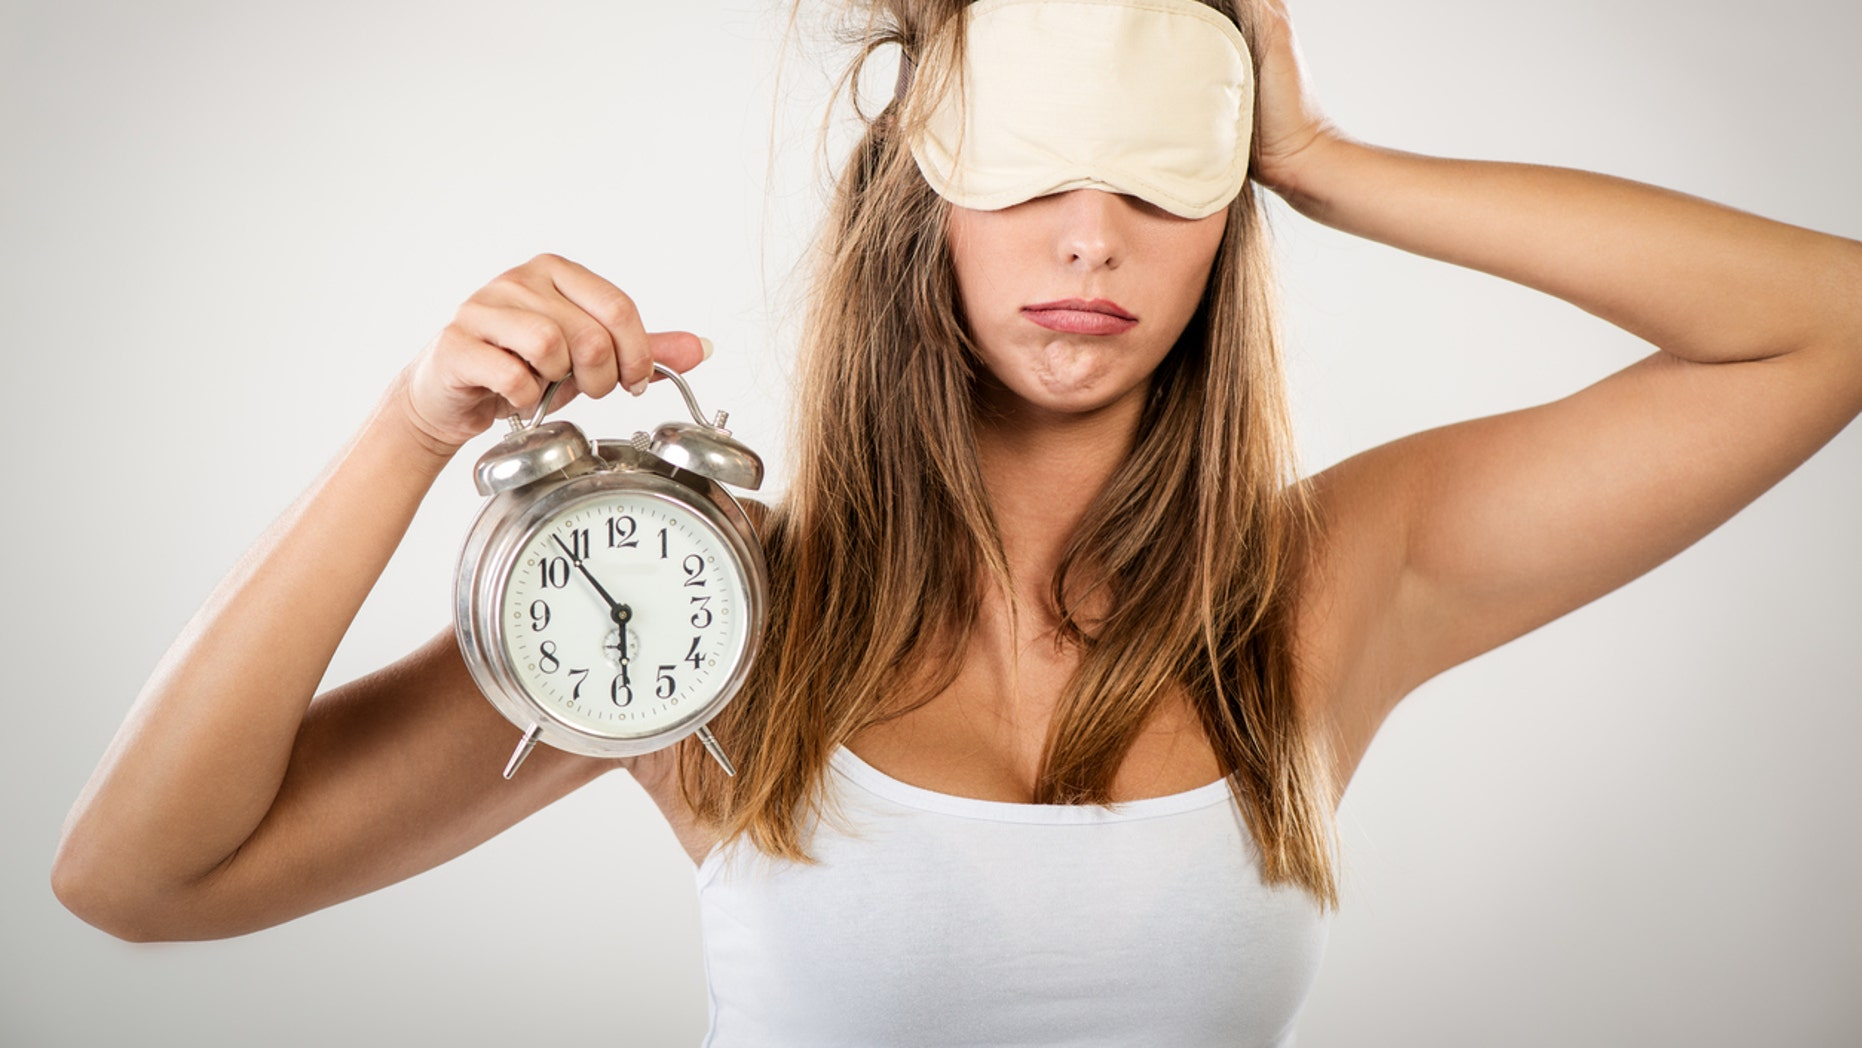 Beautiful young woman with sleeping mask holding alarm clock. She is tired and lazy in morning.